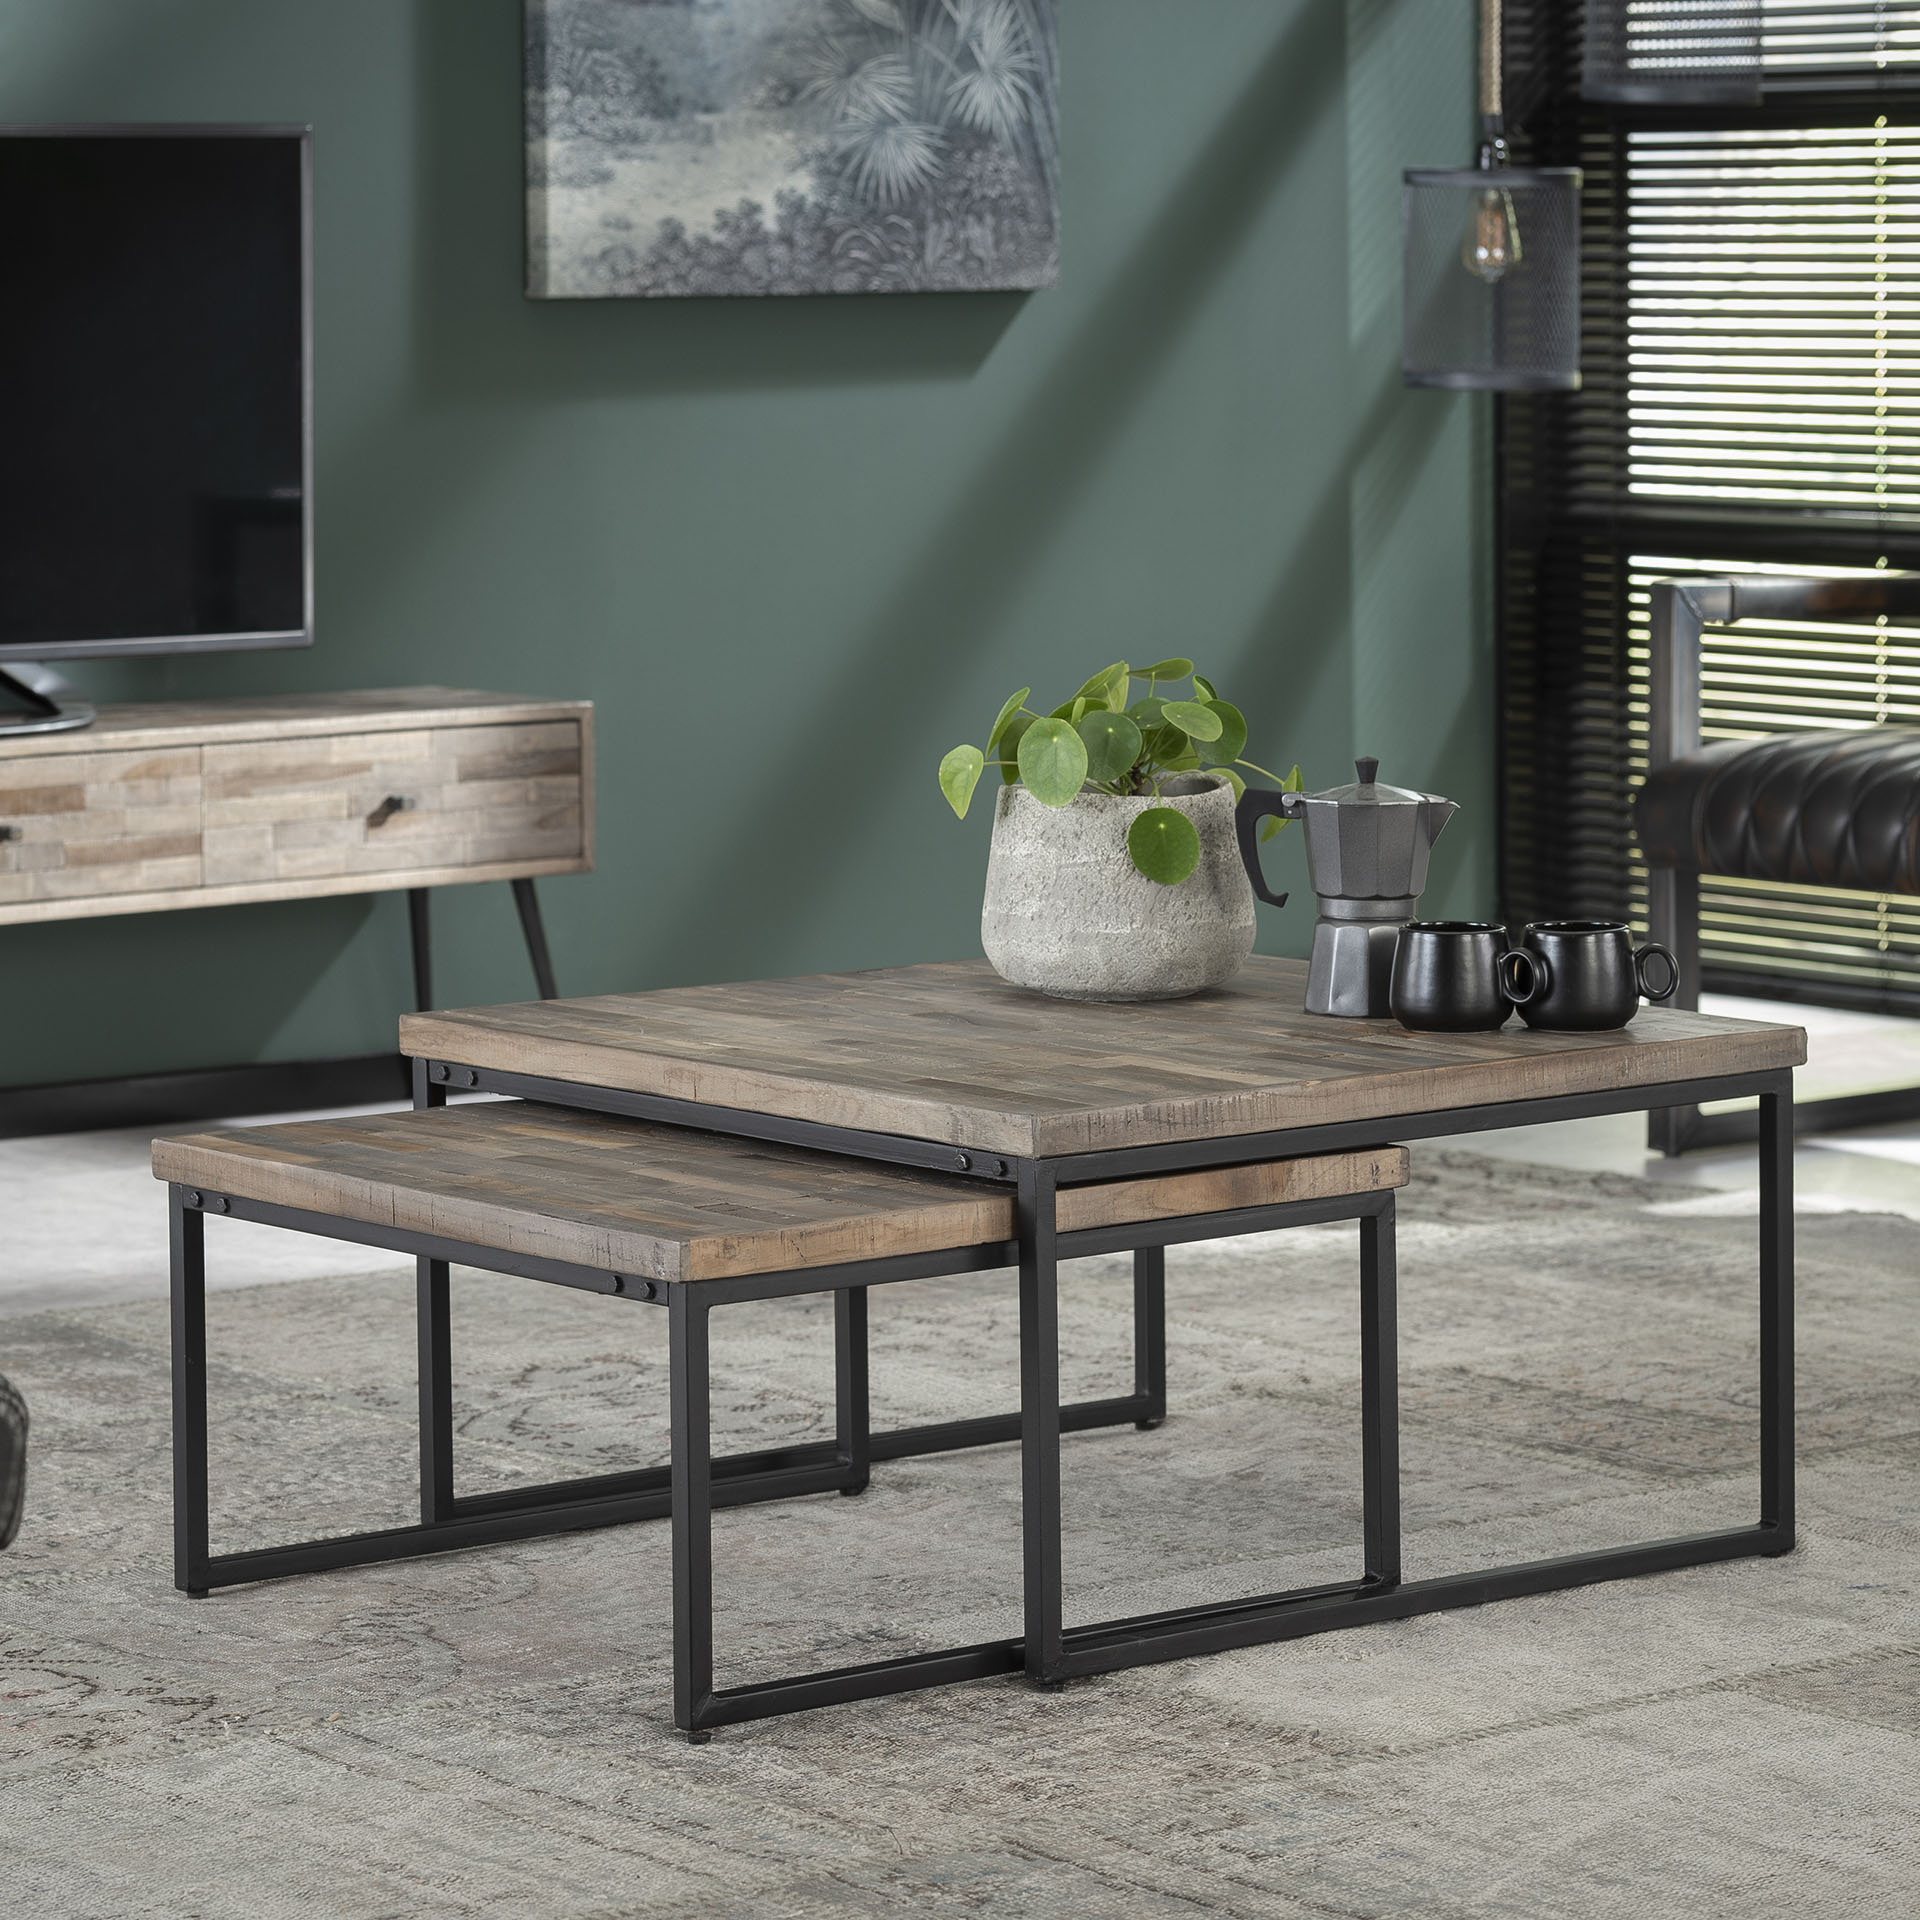 Grande Table Basse Gigogne Teck Recycle 2 Pieces Java Tables